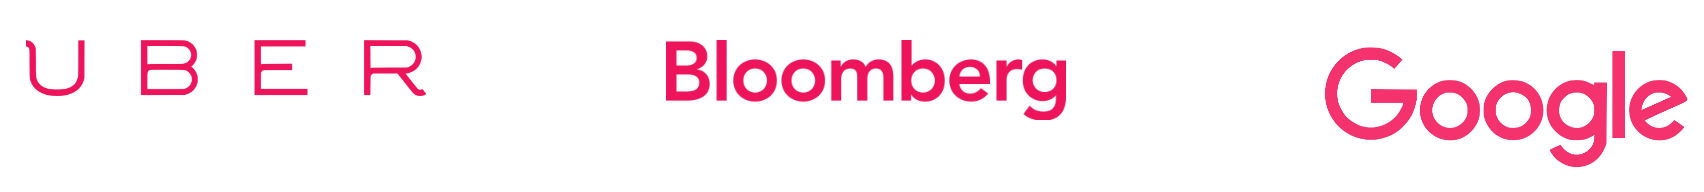 Uber, Bloomberg and Google logos in pink